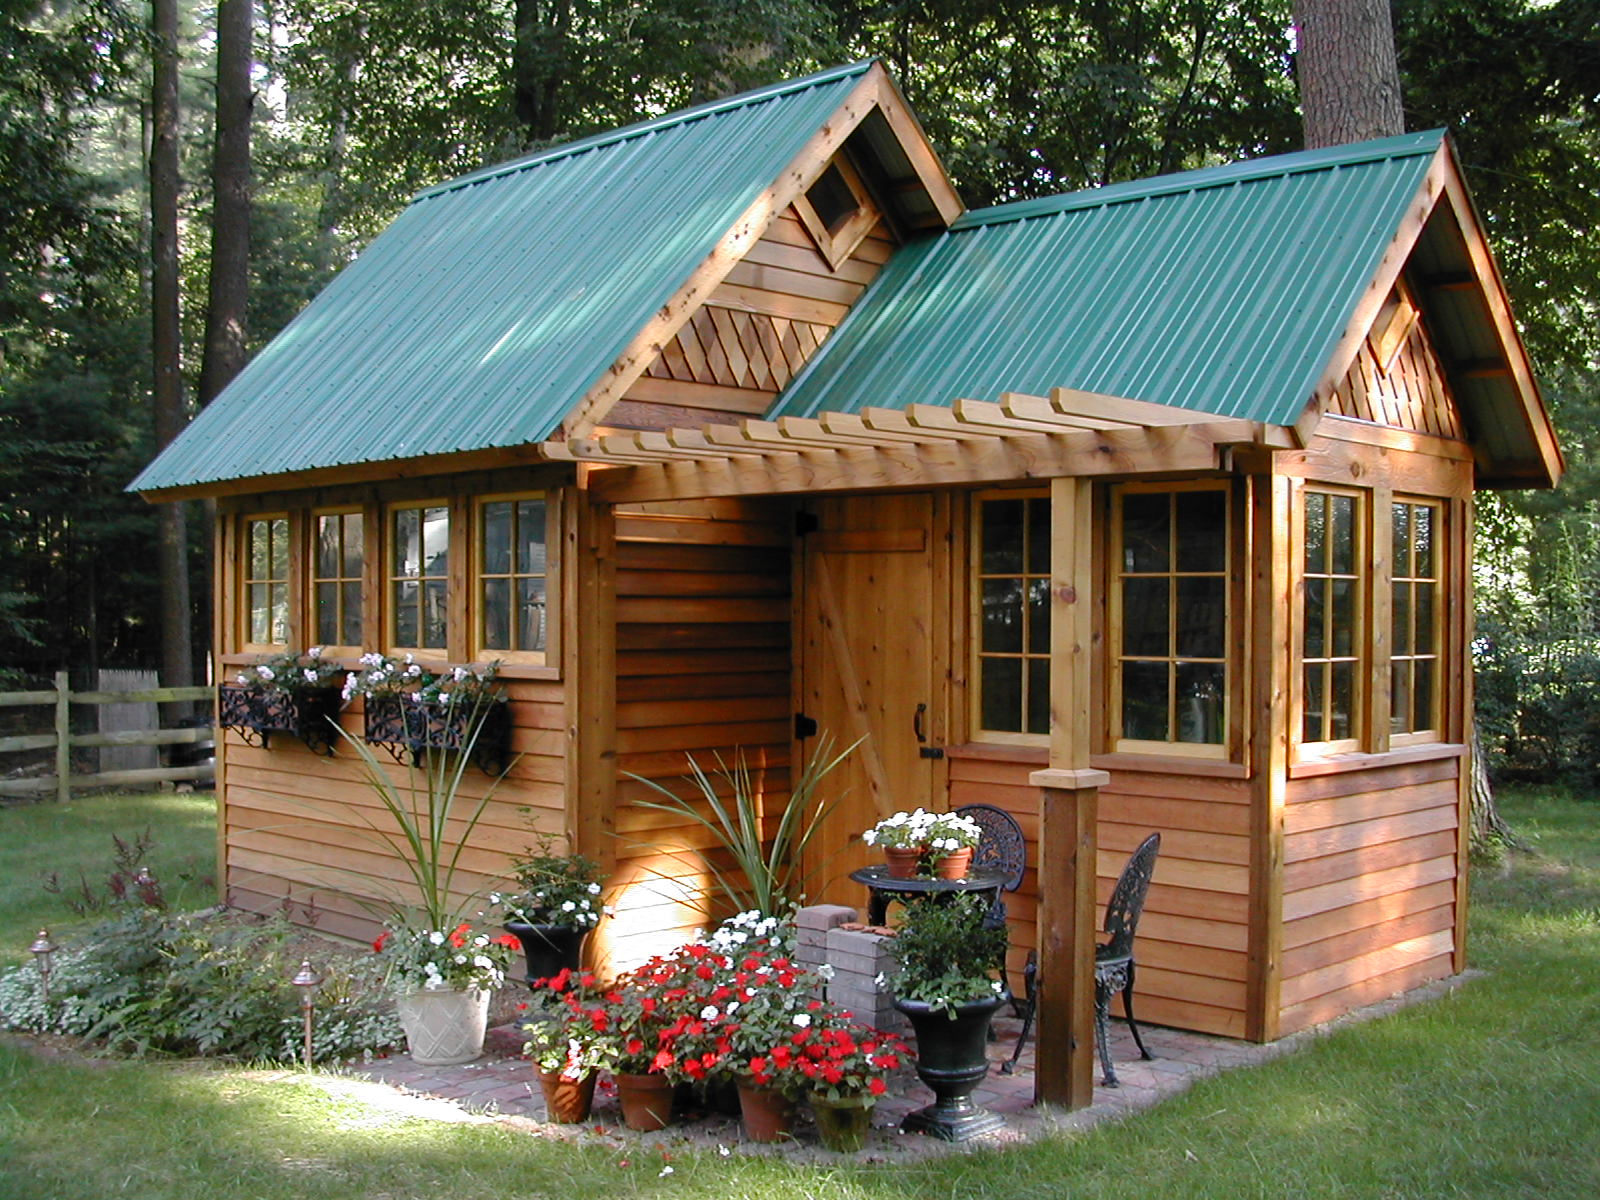 Garden Shed Tiny House